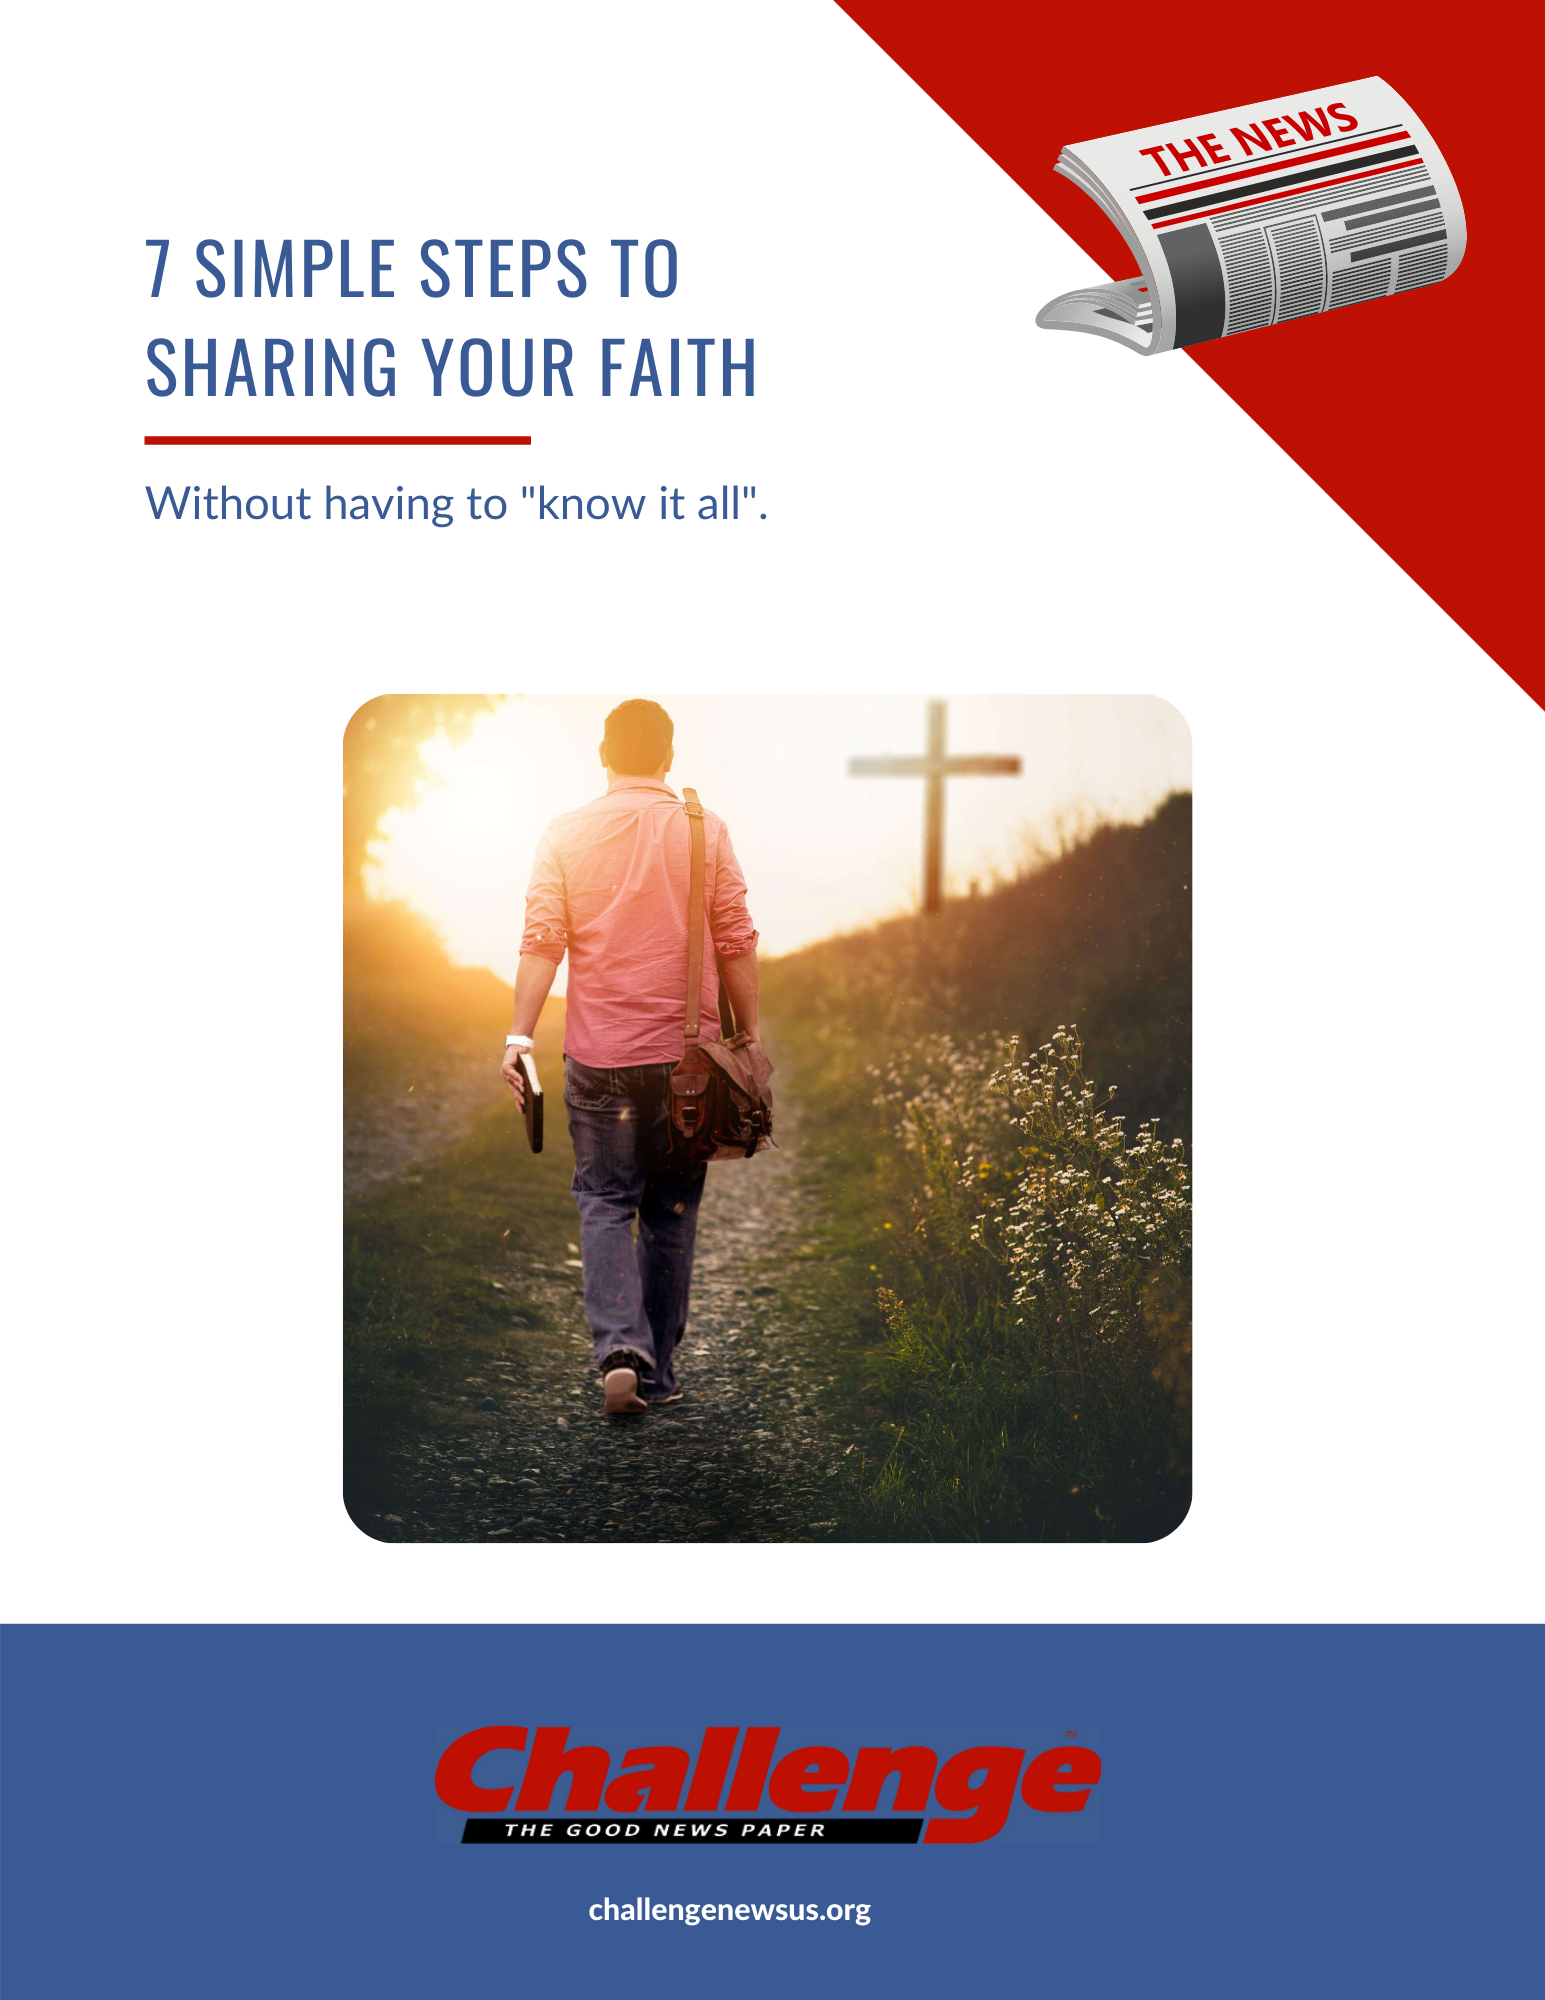 Copy of 7 Simple Steps to Sharing Jesus